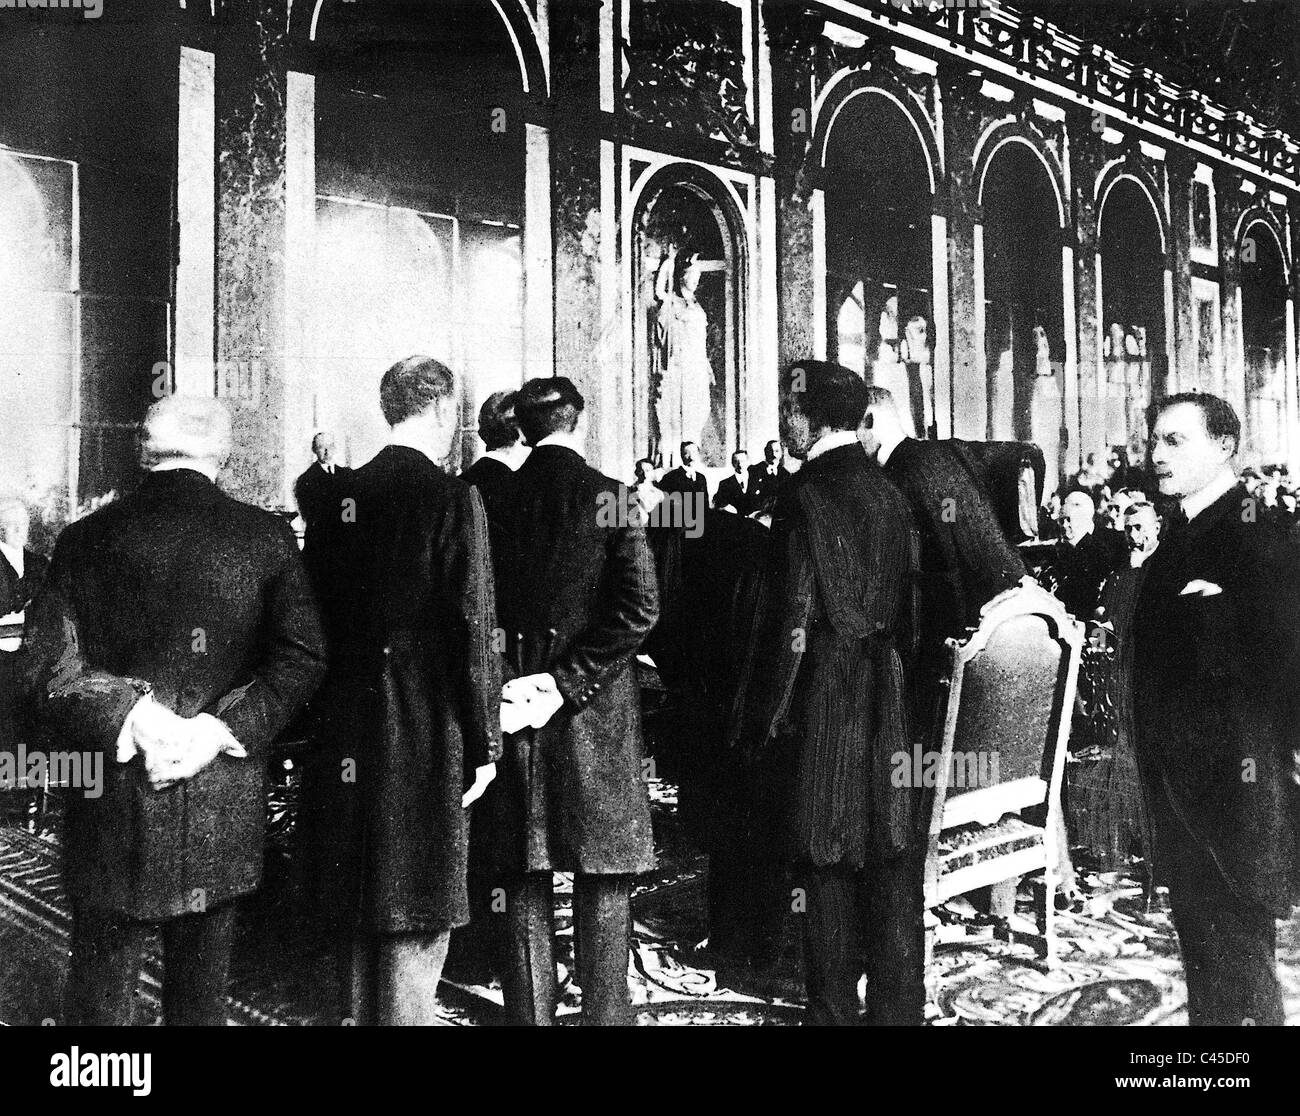 the versailles treaty The most important of these treaties was the treaty of versailles ending the war with germany that was produced by the paris peace conference and signed june 28, 1919 .